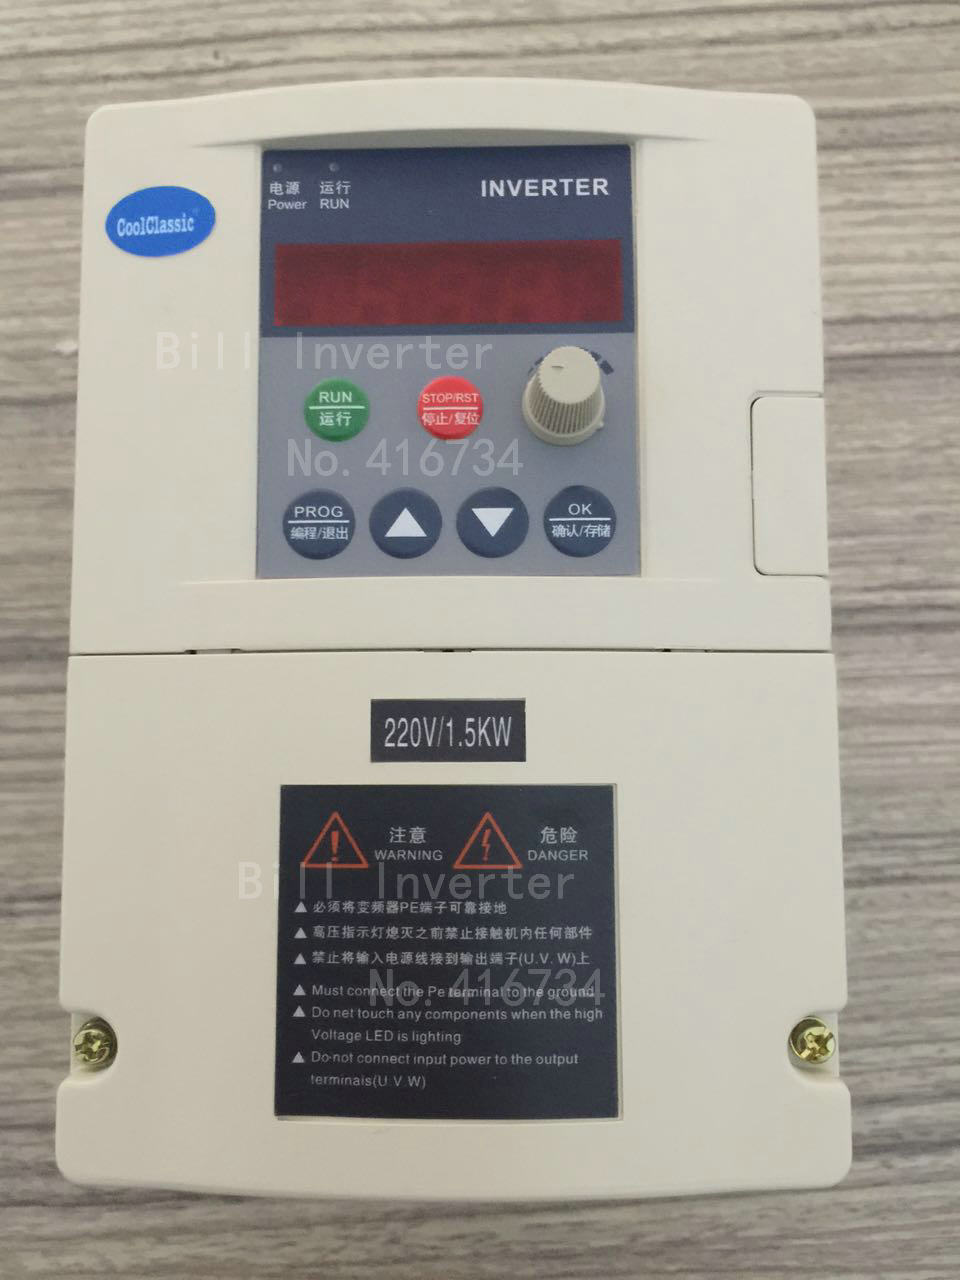 VFD Inverter CoolClassic ZW S2015 Inverter 1500w Single phase 220v input three phase motor with control